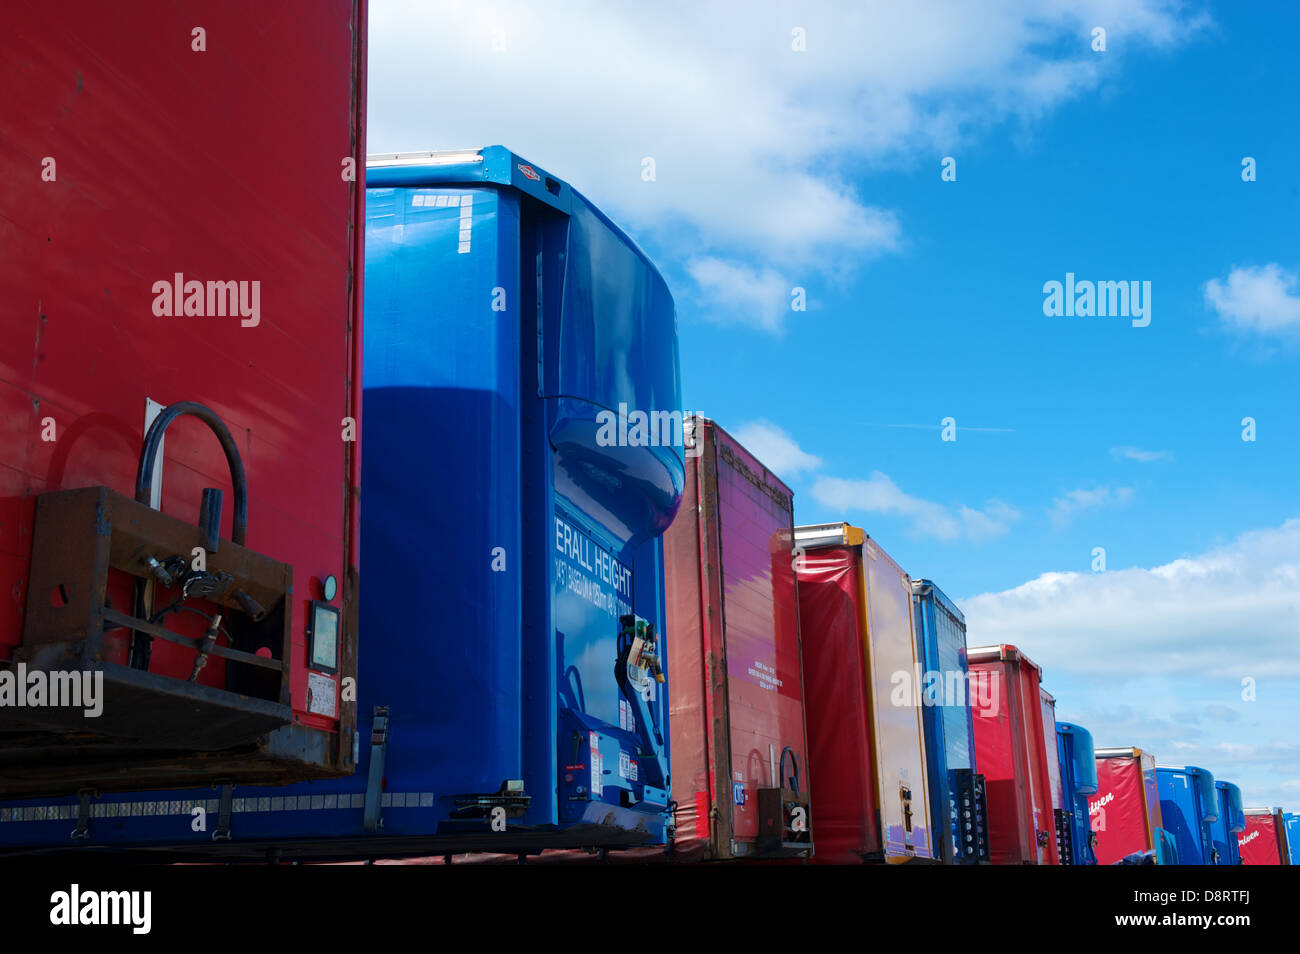 Lorry trailers stand in a trailer park. - Stock Image